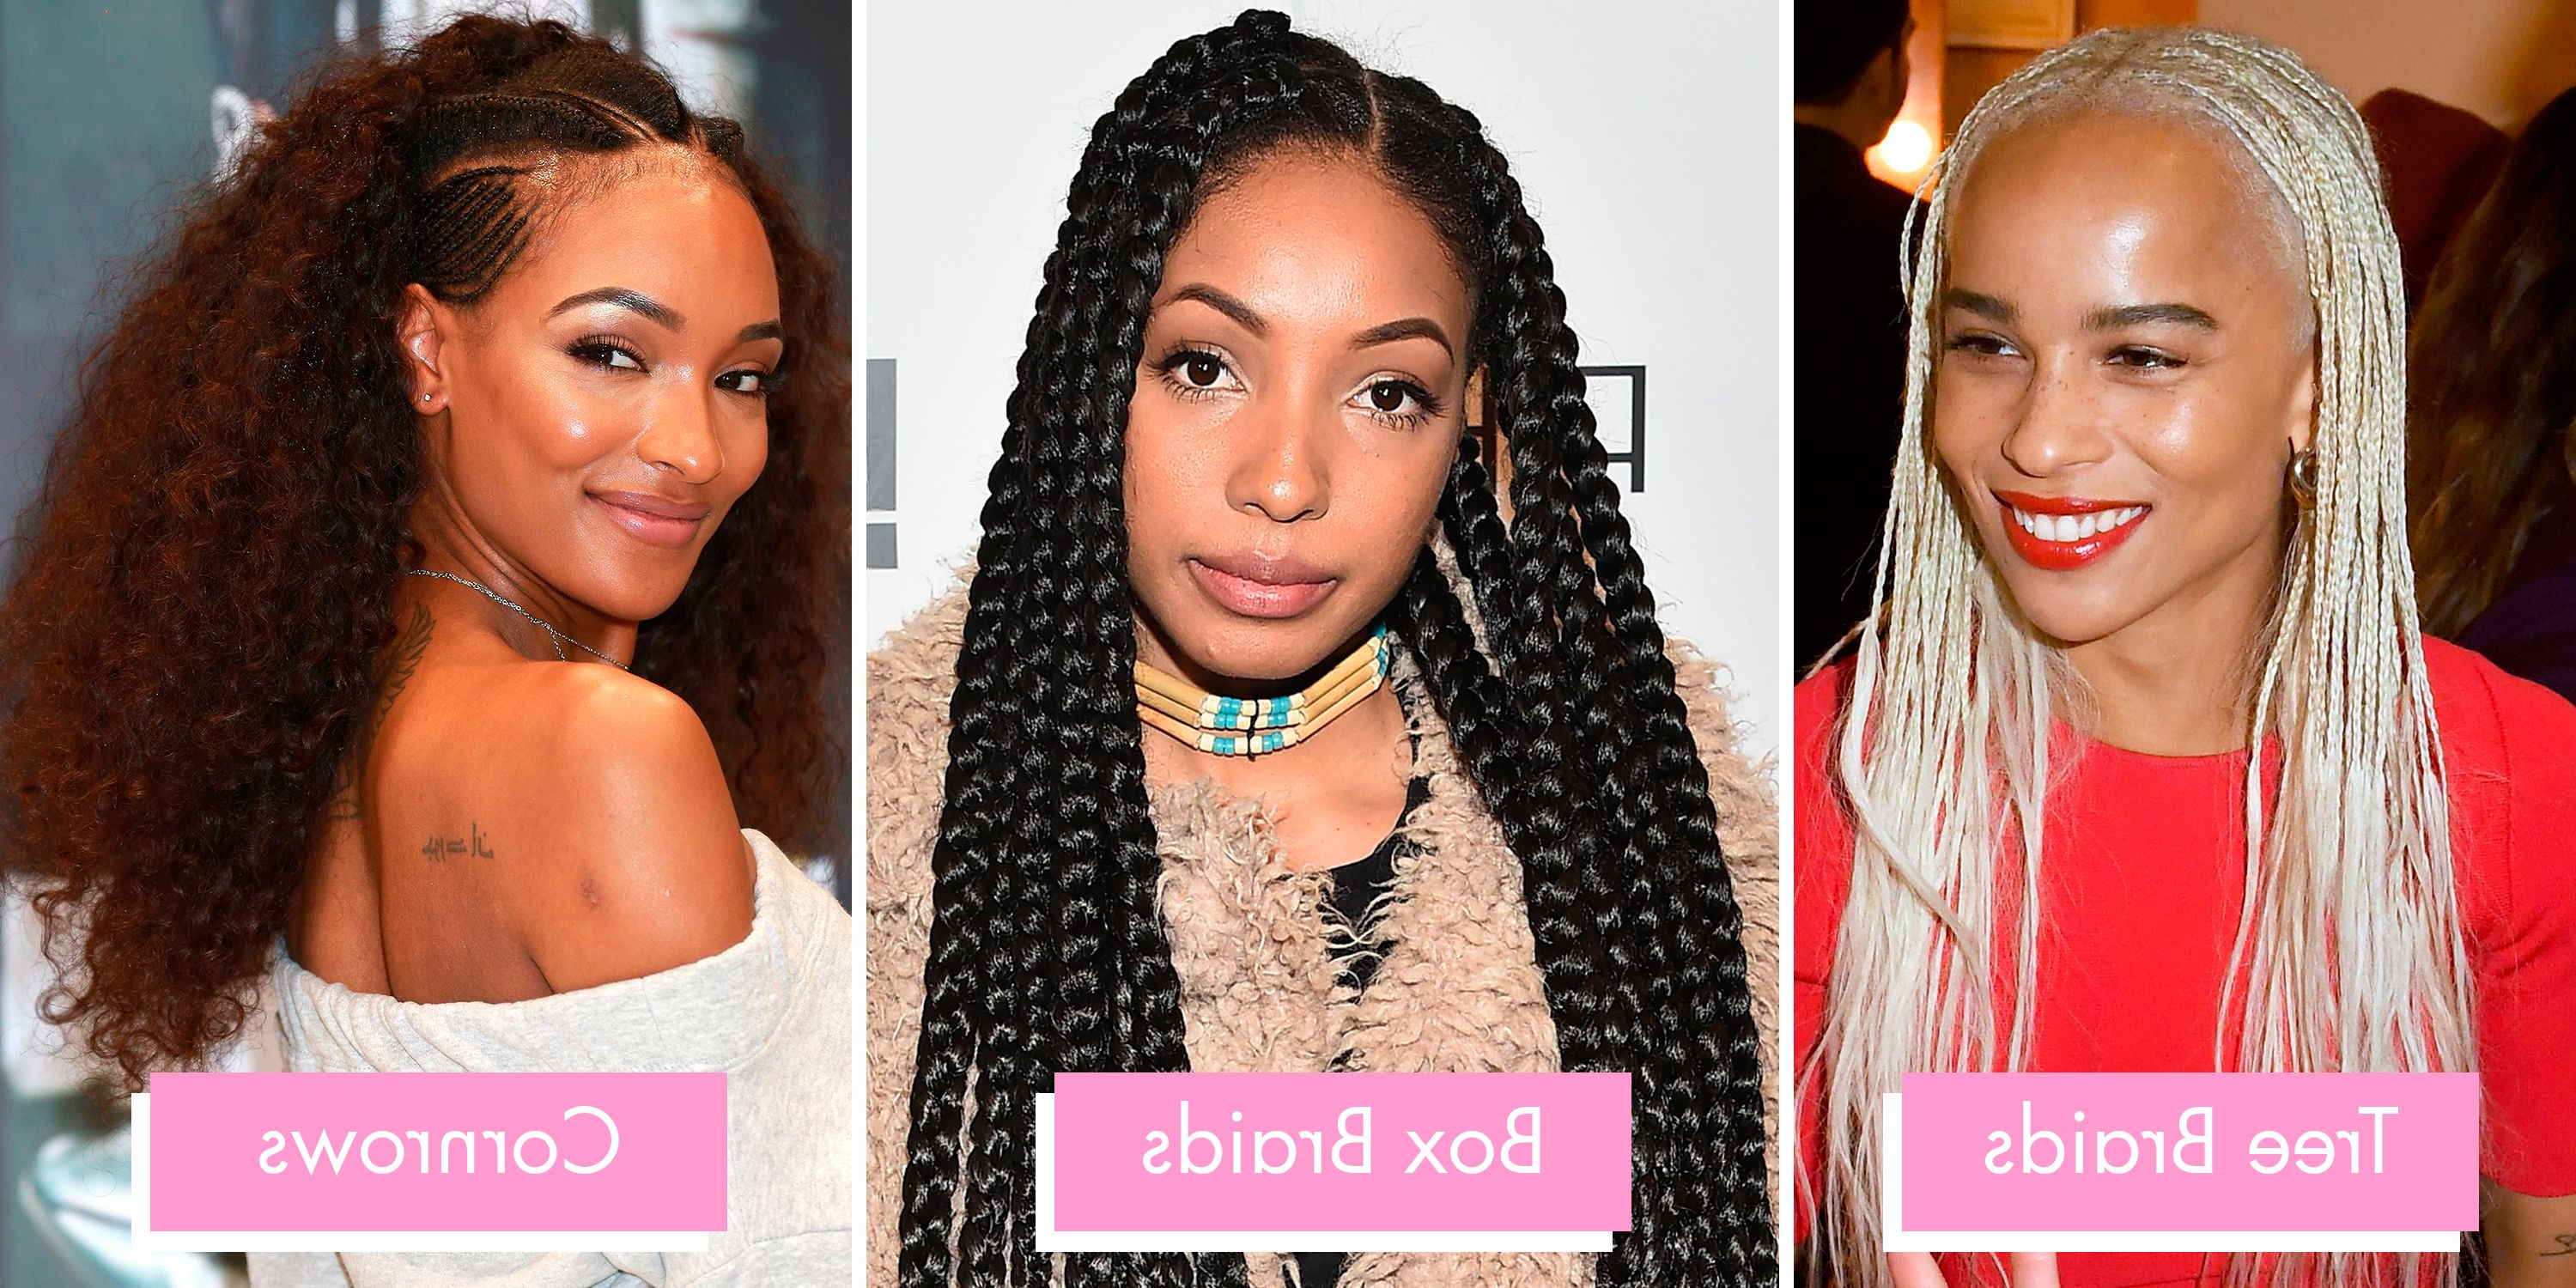 Braids And Twists 2019 – 14 Hairstyles From Crochet And Box Pertaining To Latest Twists Micro Braid Hairstyles With Curls (View 6 of 20)